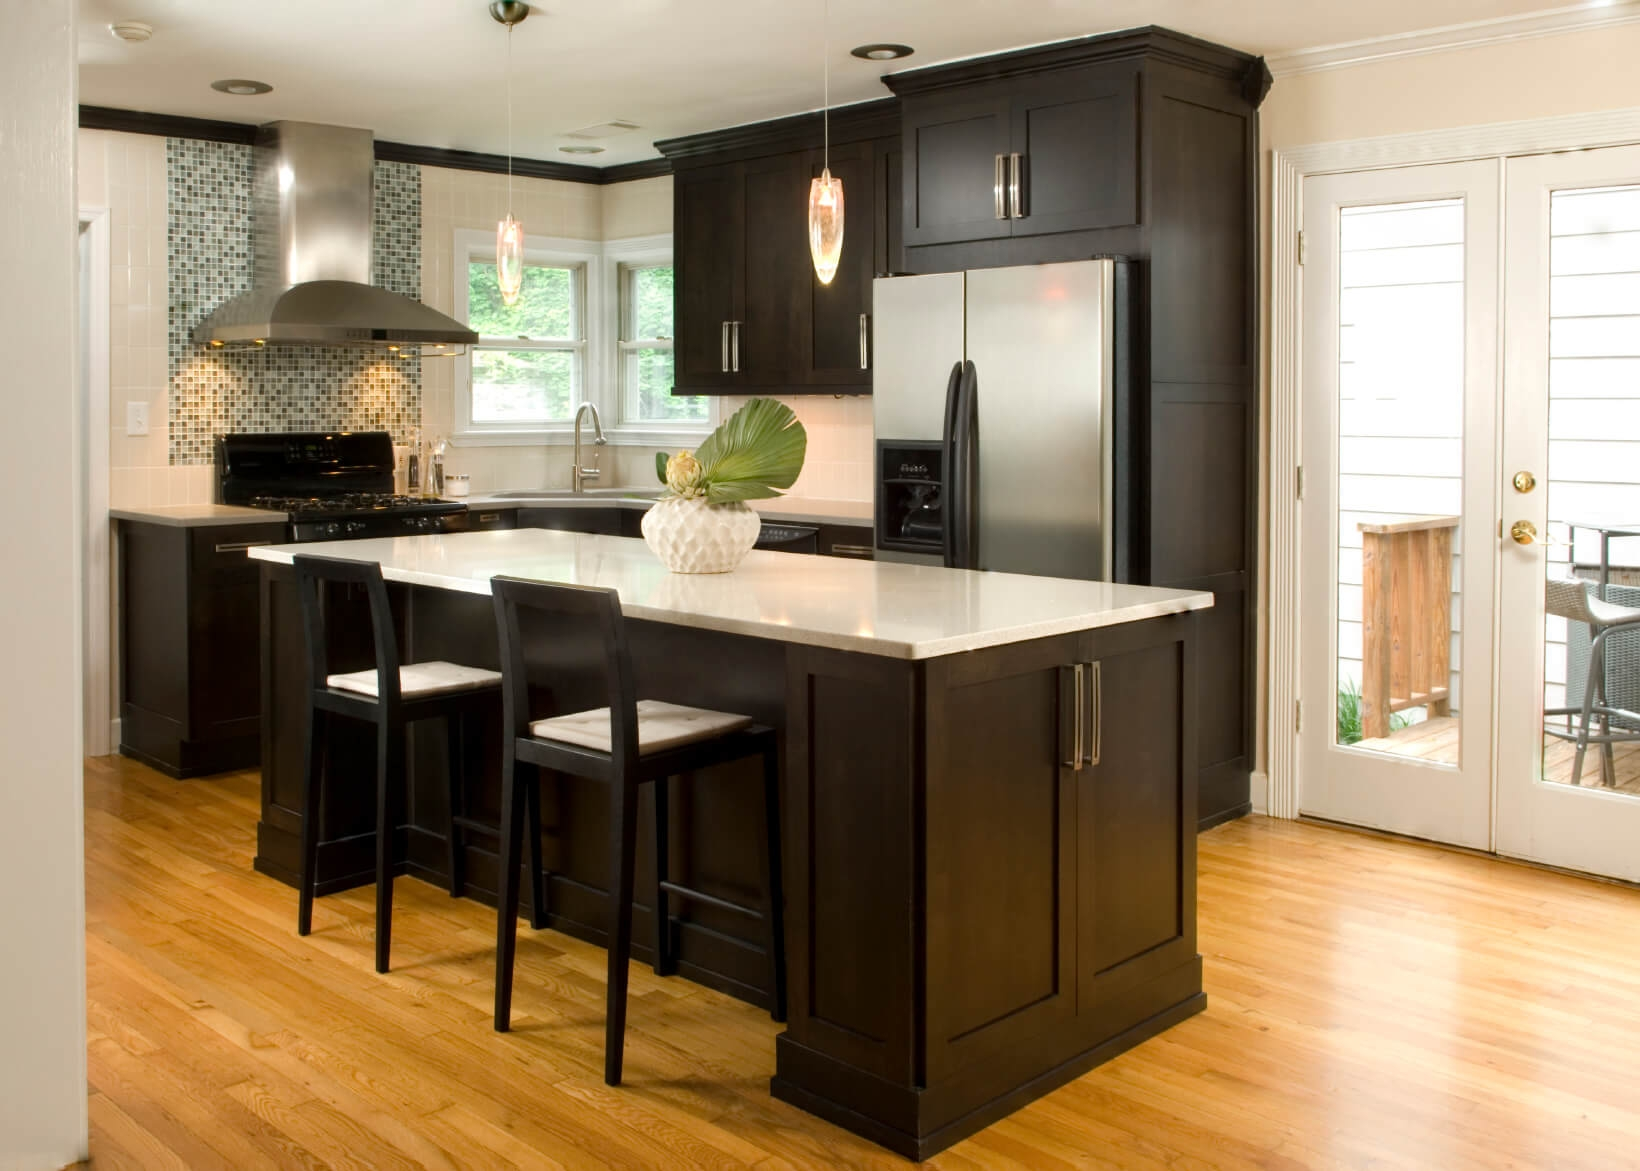 Polyester Kitchen Cabinets Vs Wood